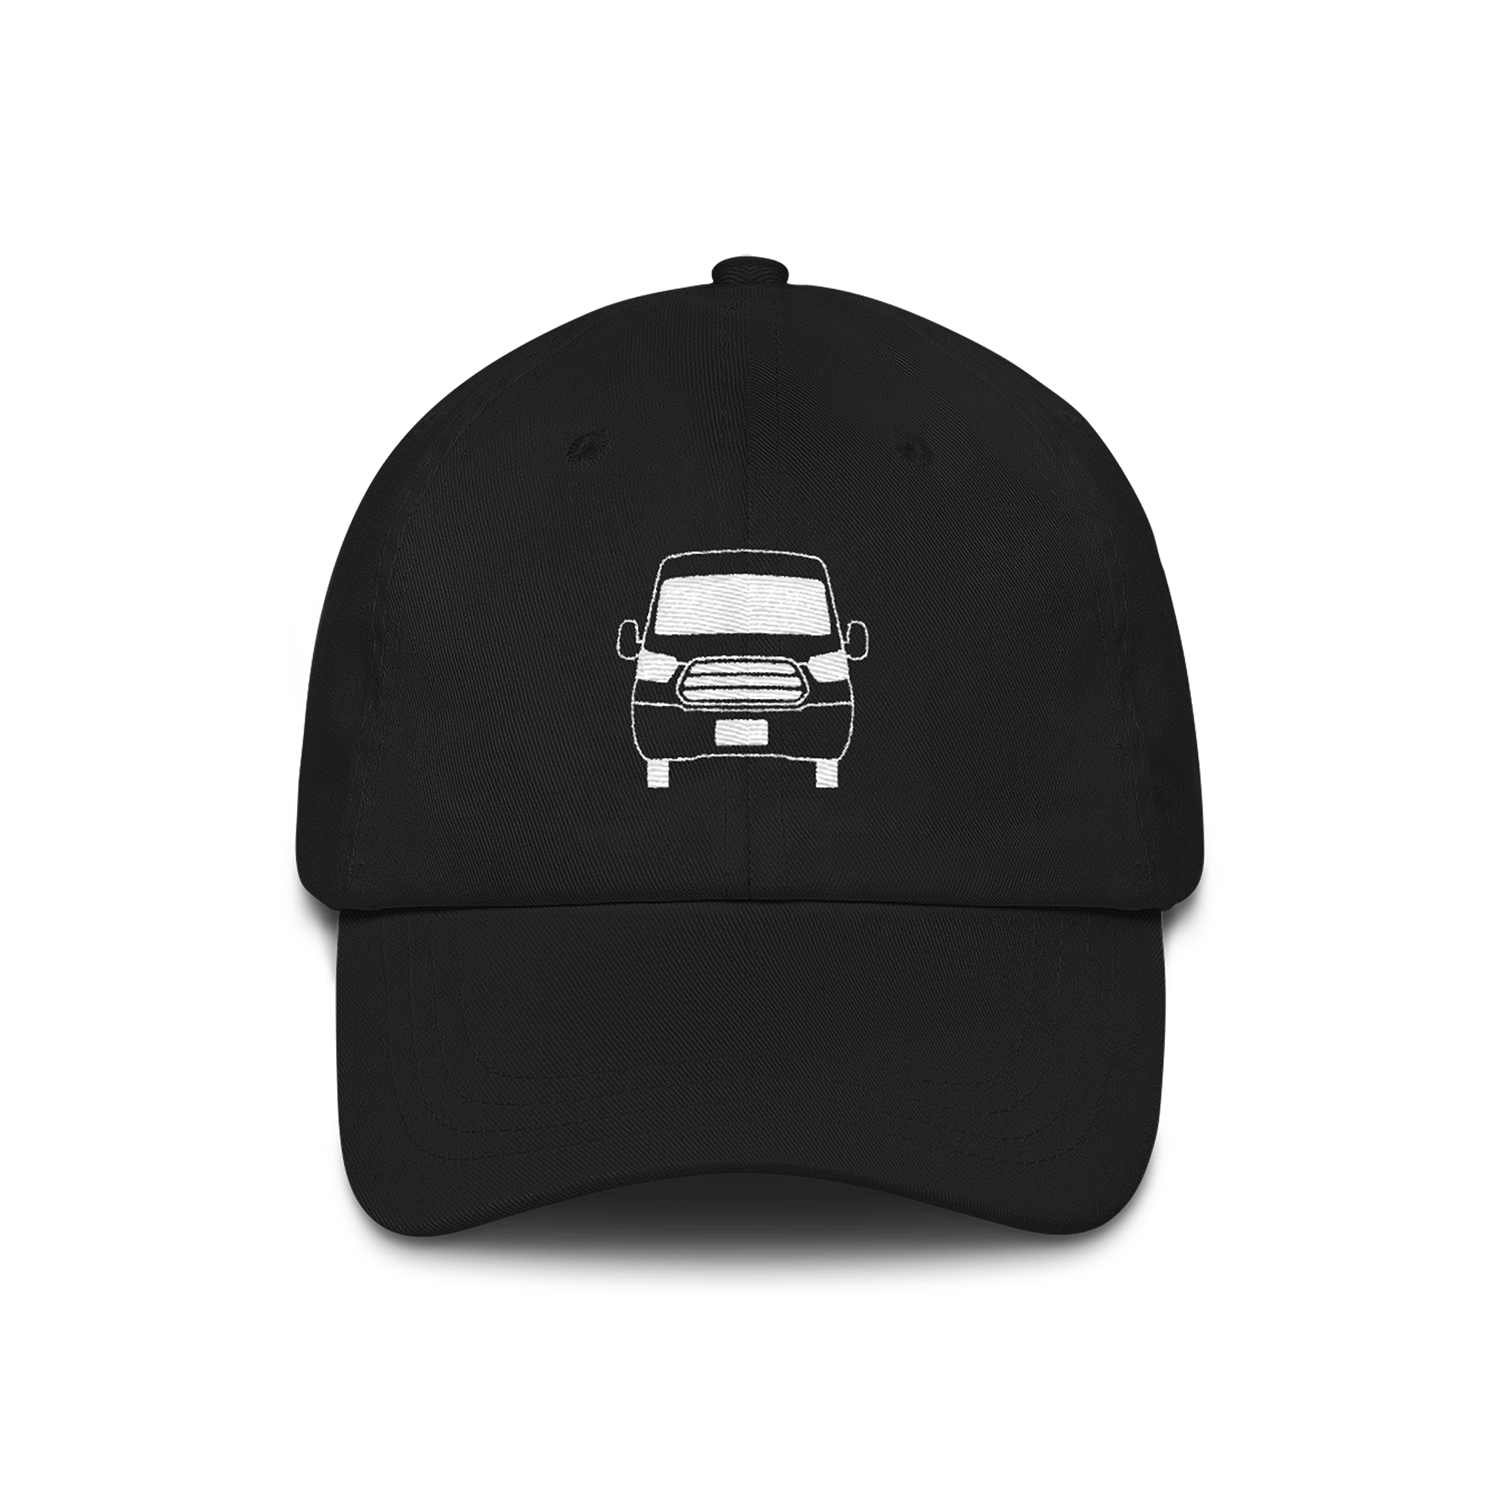 Next Wednesday Cap